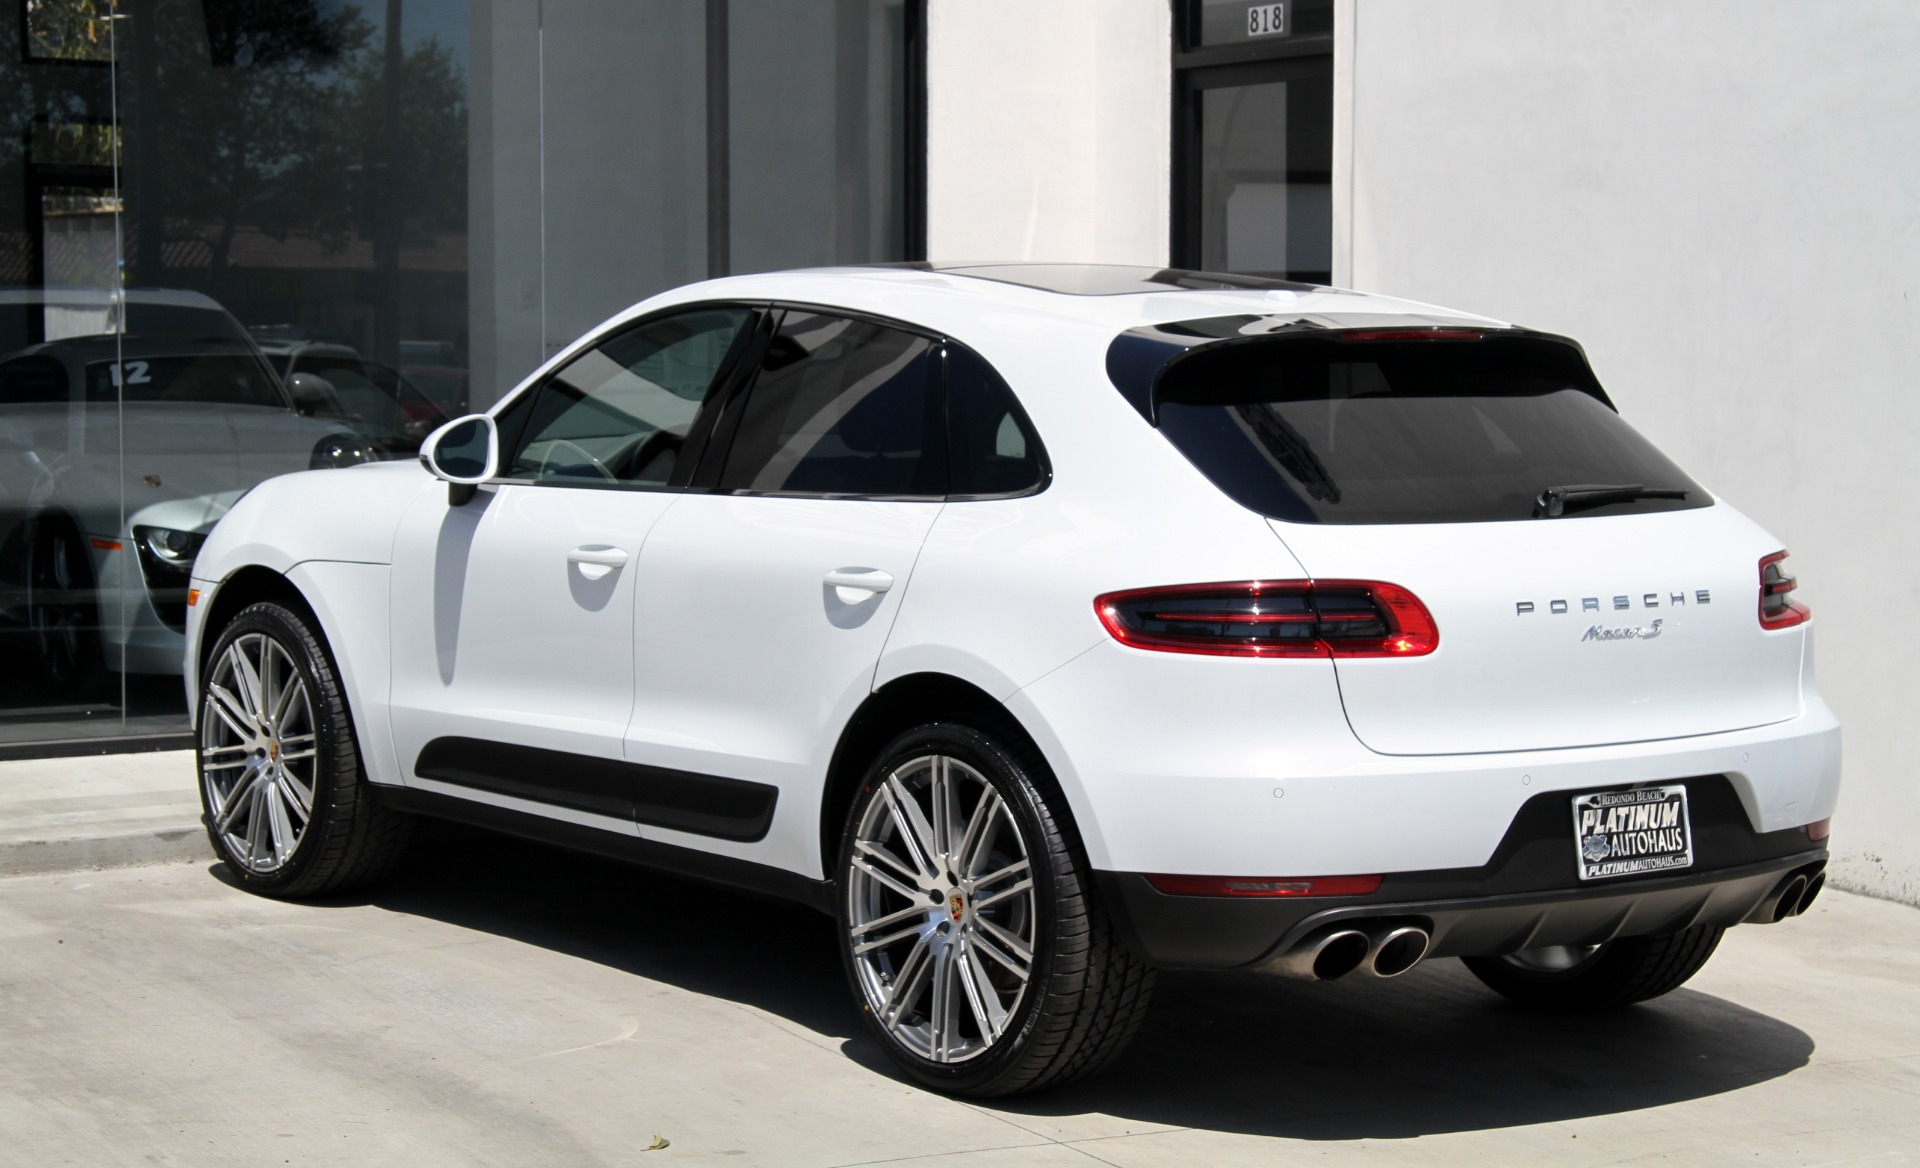 2017 Porsche Macan S Stock 6192 For Sale Near Redondo Beach Ca Ca Porsche Dealer